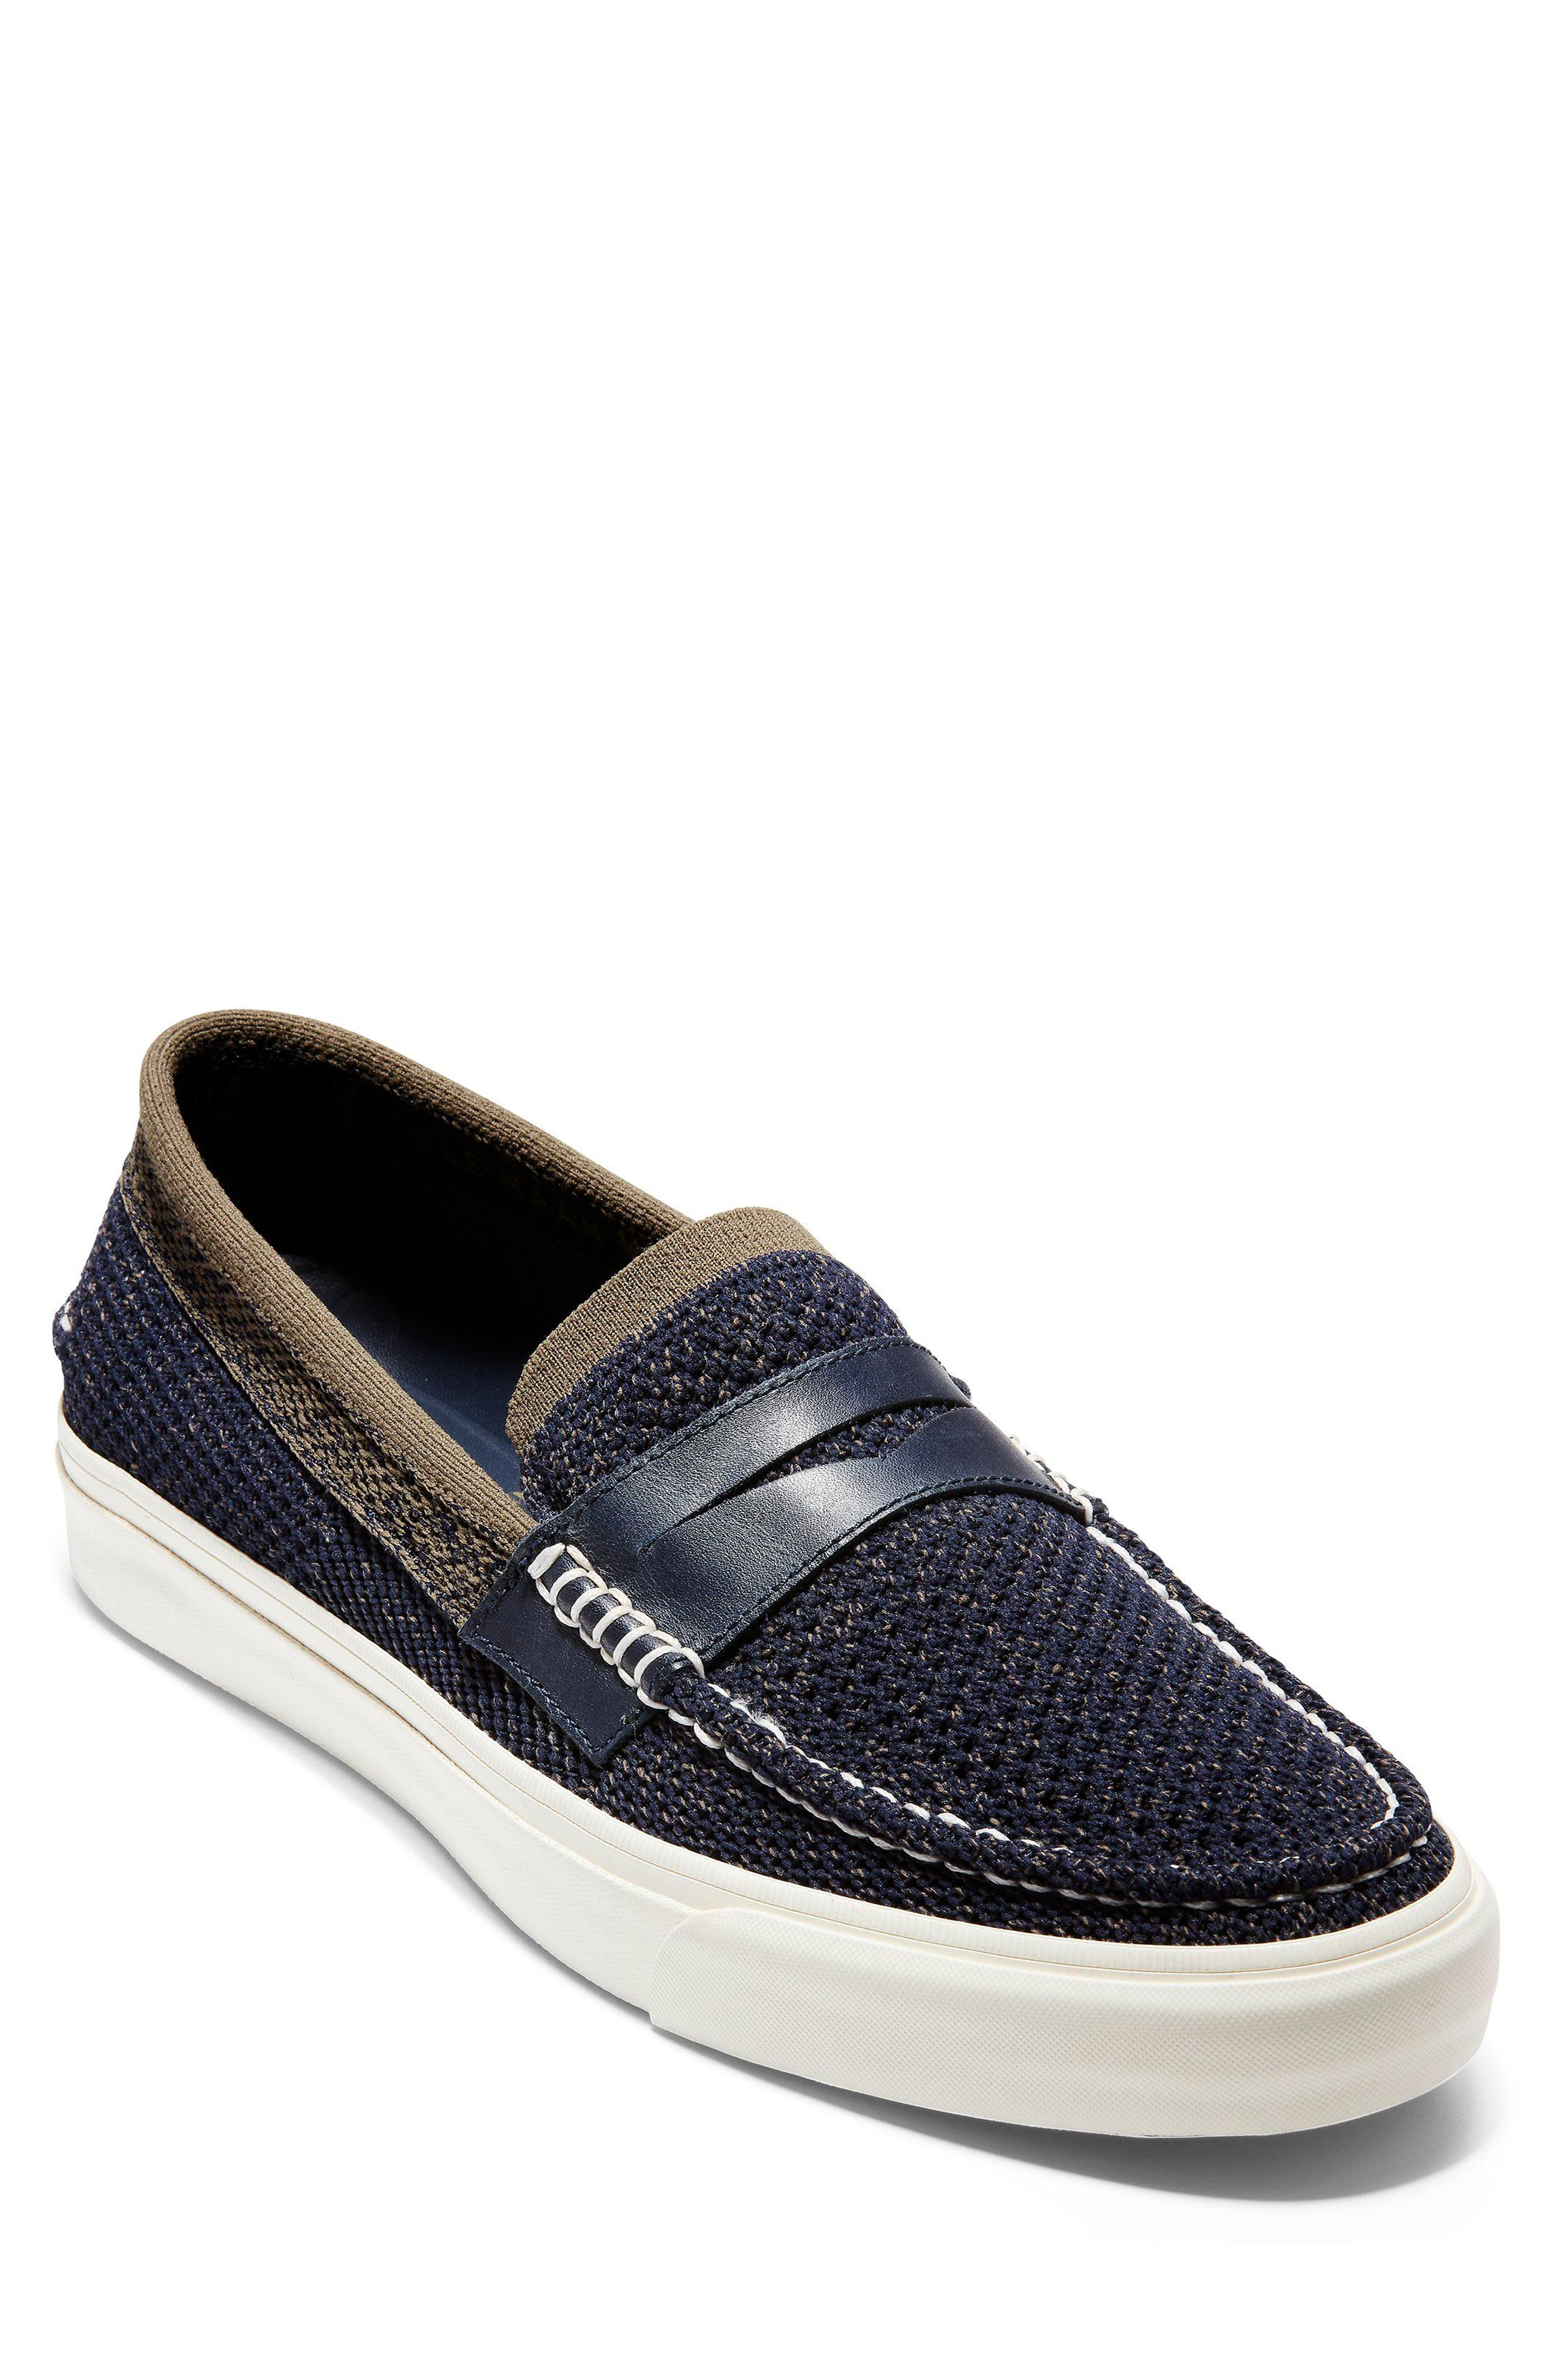 Pinch Stitch LX Stitchlite<sup>™</sup> Penny Loafer,                         Main,                         color, NAVY/ MOREL